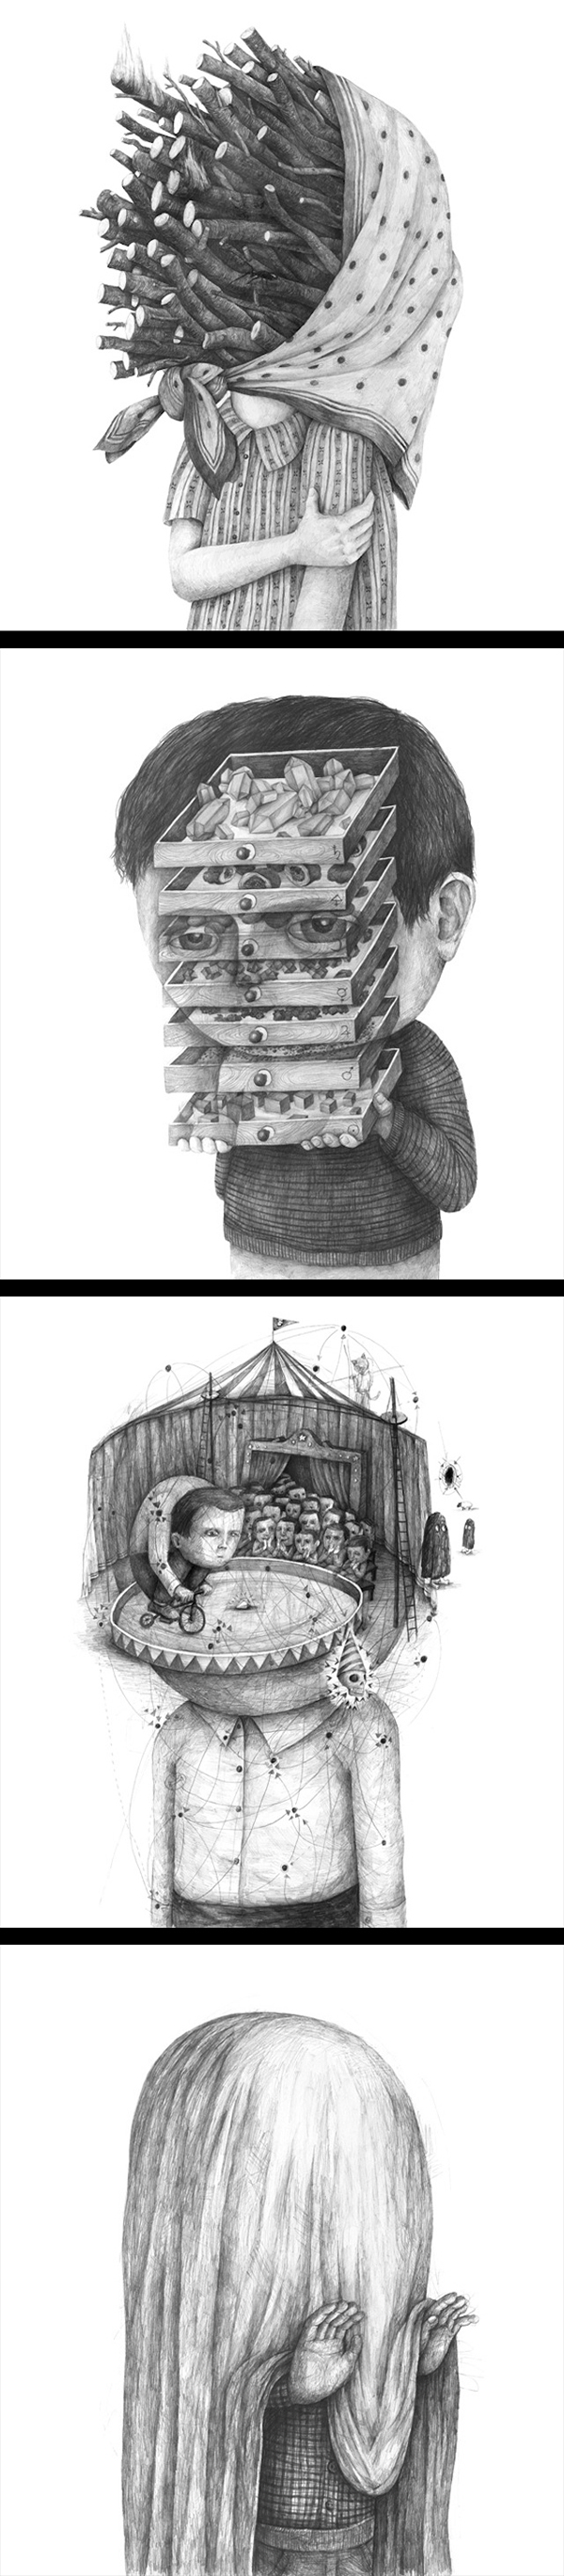 Inspirations graphiques #15 Stefan Zsaitsits | Surrealistic Drawings